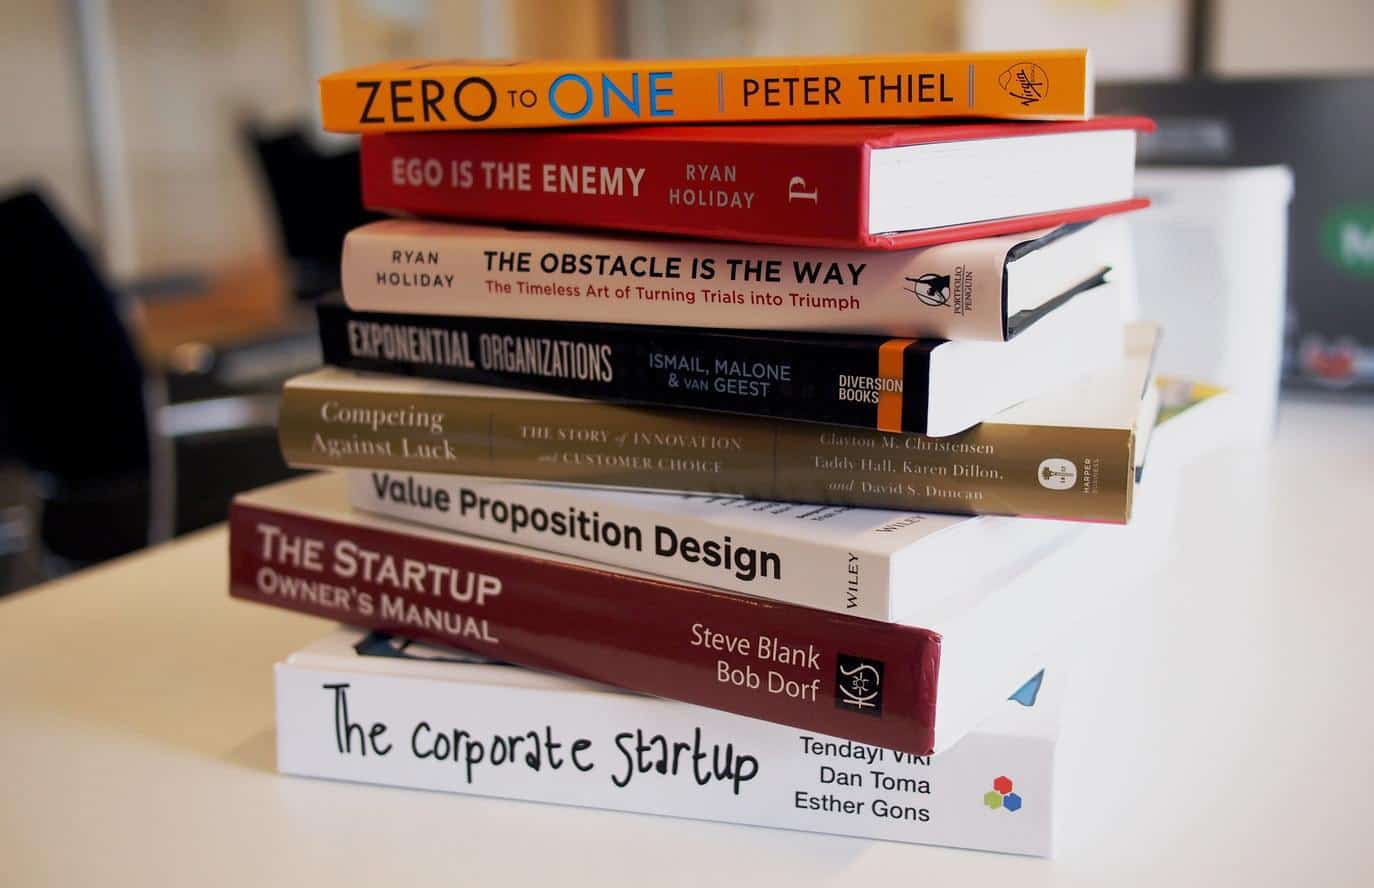 Image Book 20 All Time Best Entrepreneur Books To Make Your Business Successful